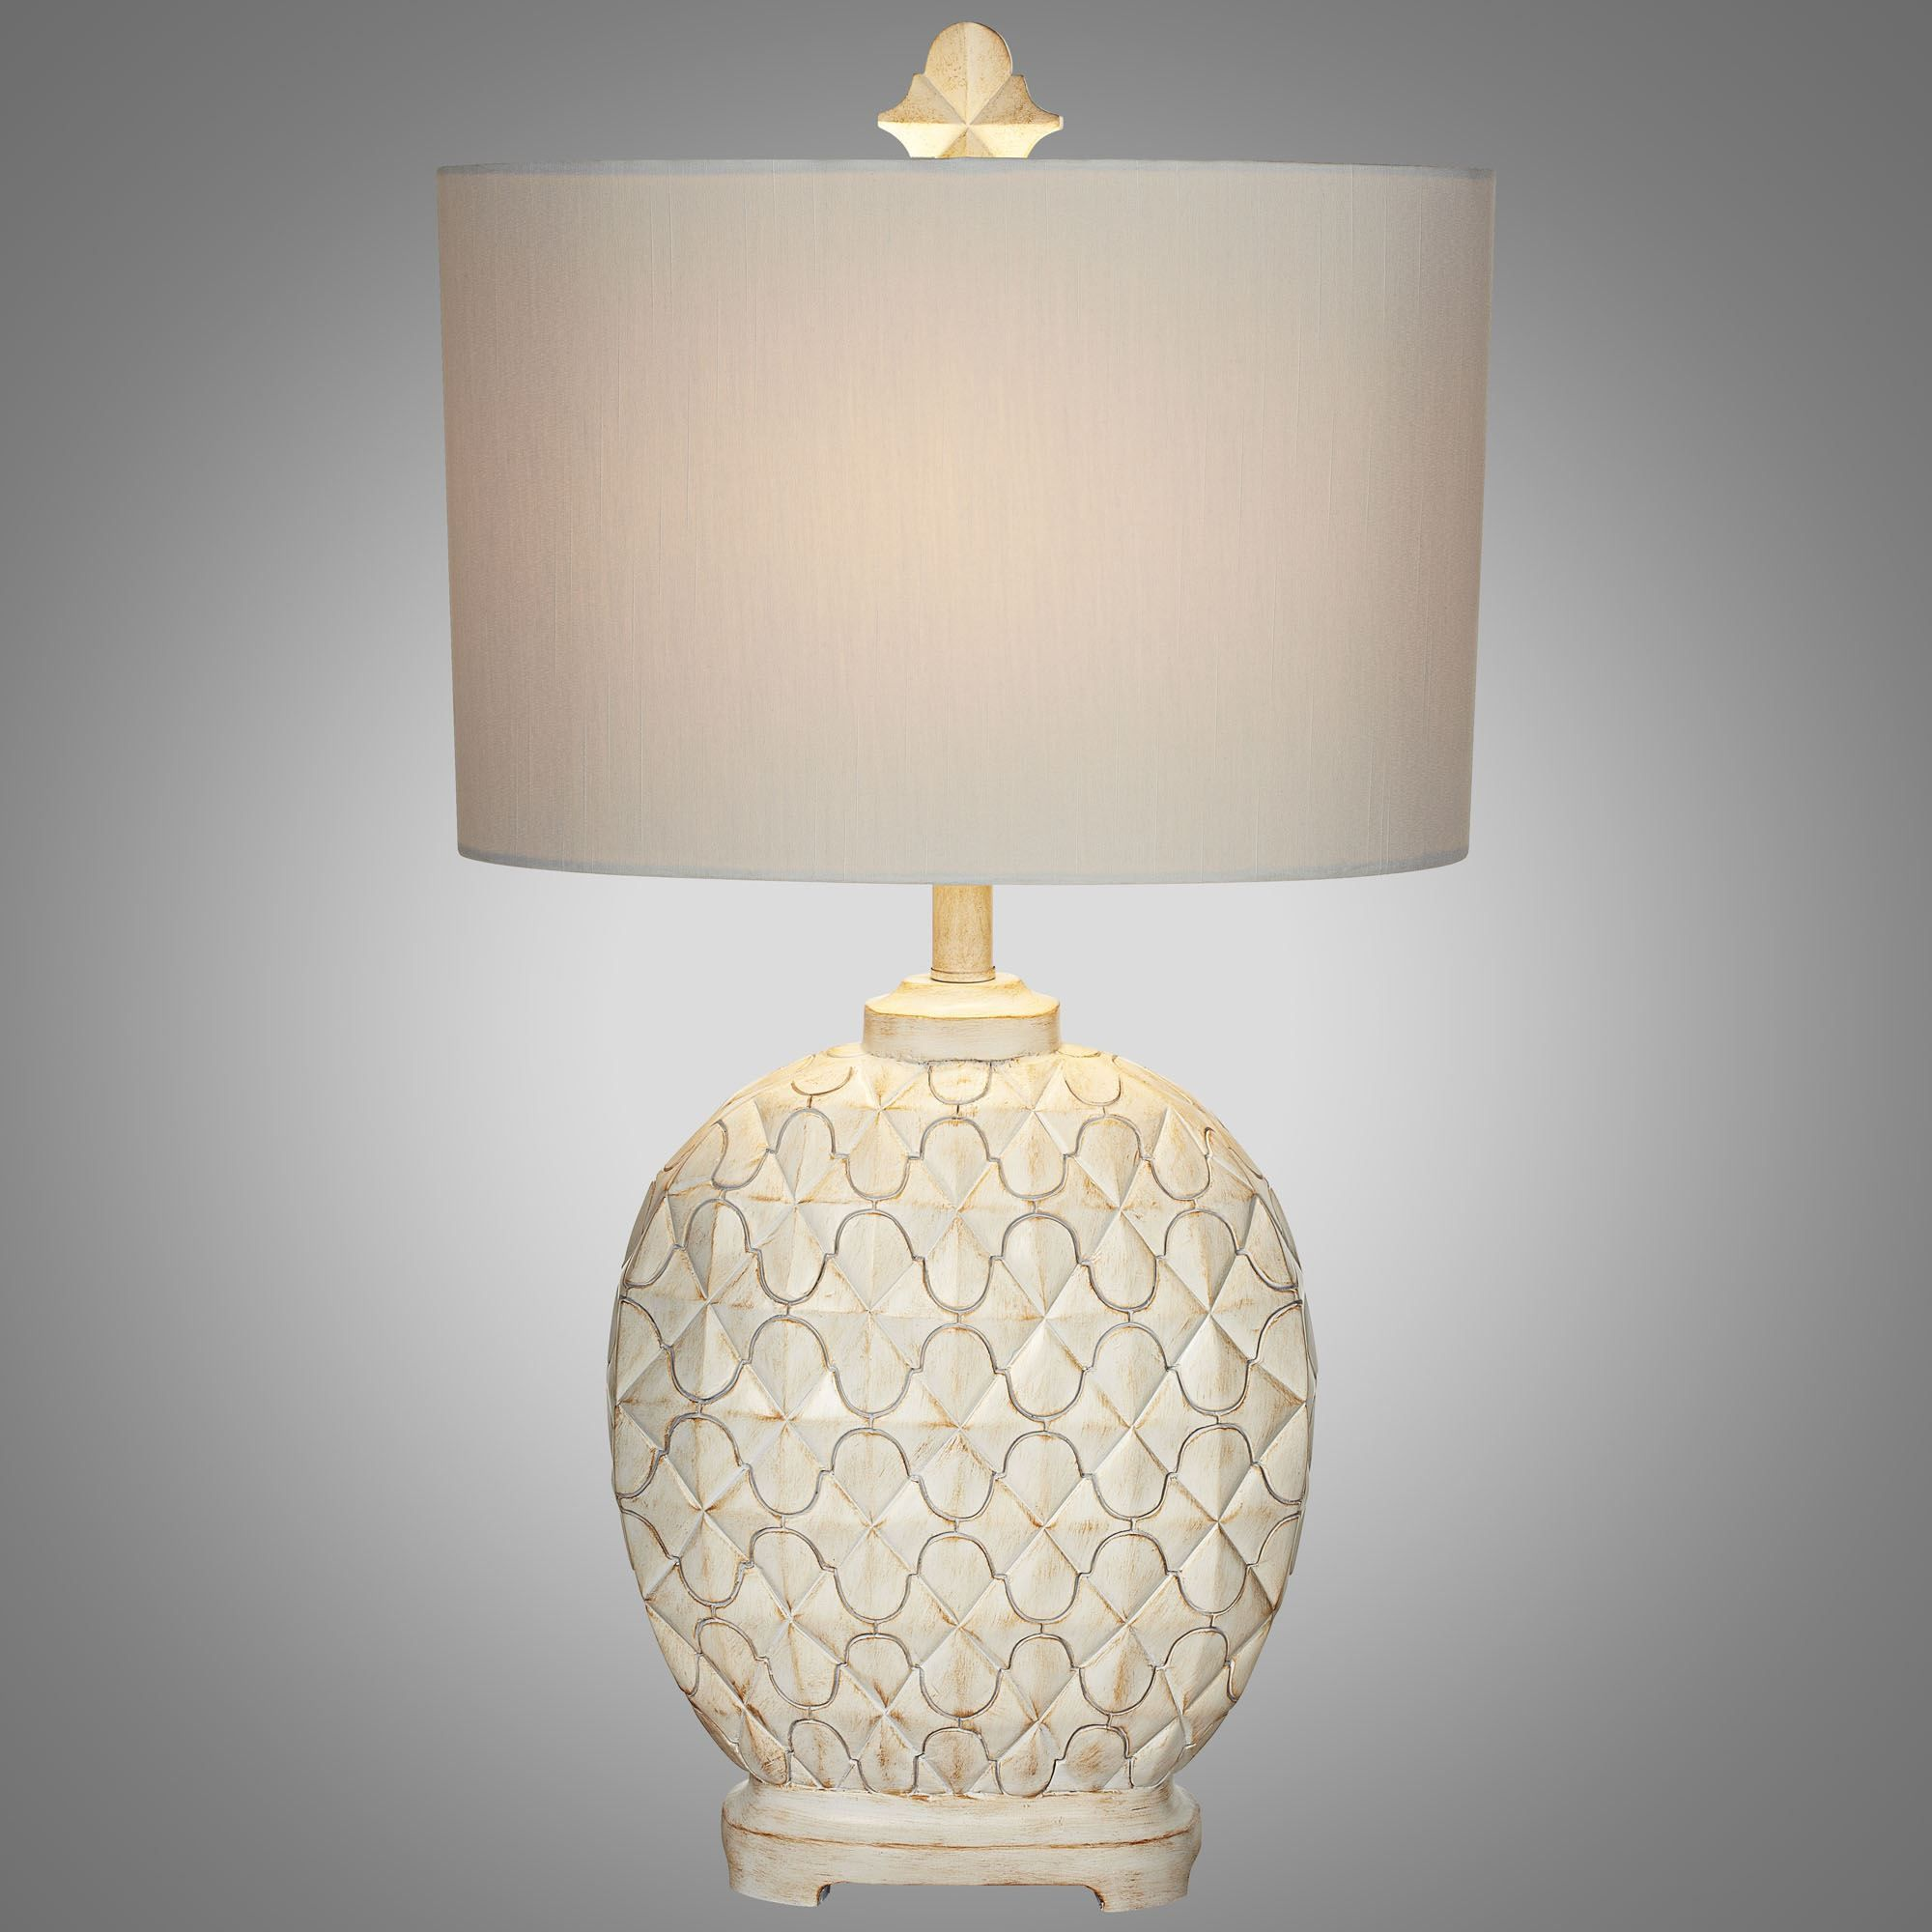 Marrakesh Weave Table Lamp by Kathy Ireland Home Lamp